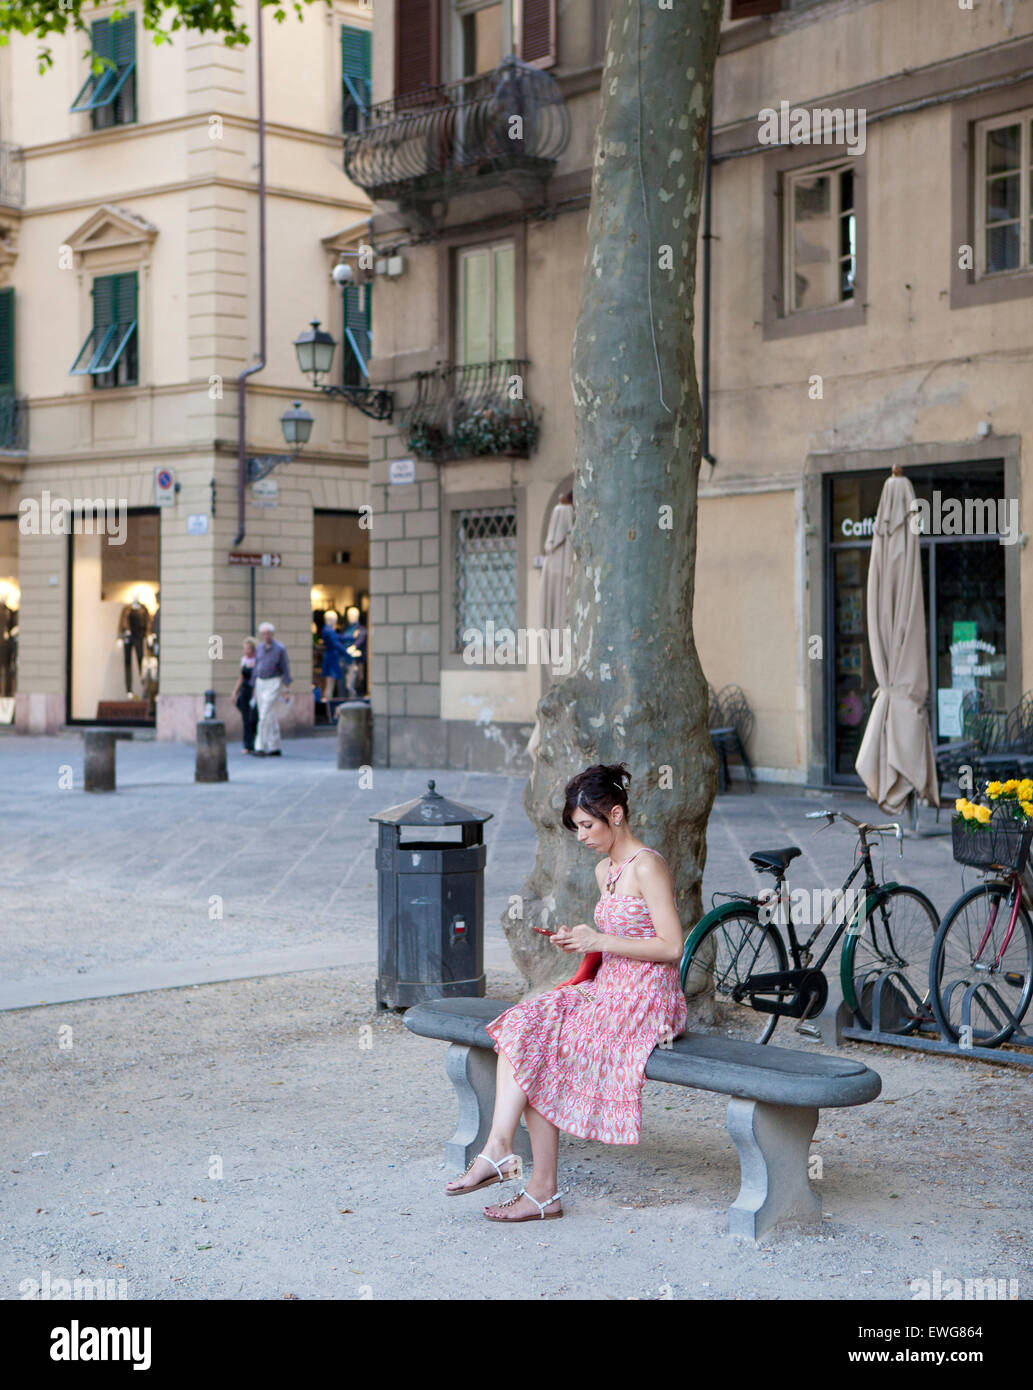 girl pink dress sitting on bench, Lucca Italy - Stock Image